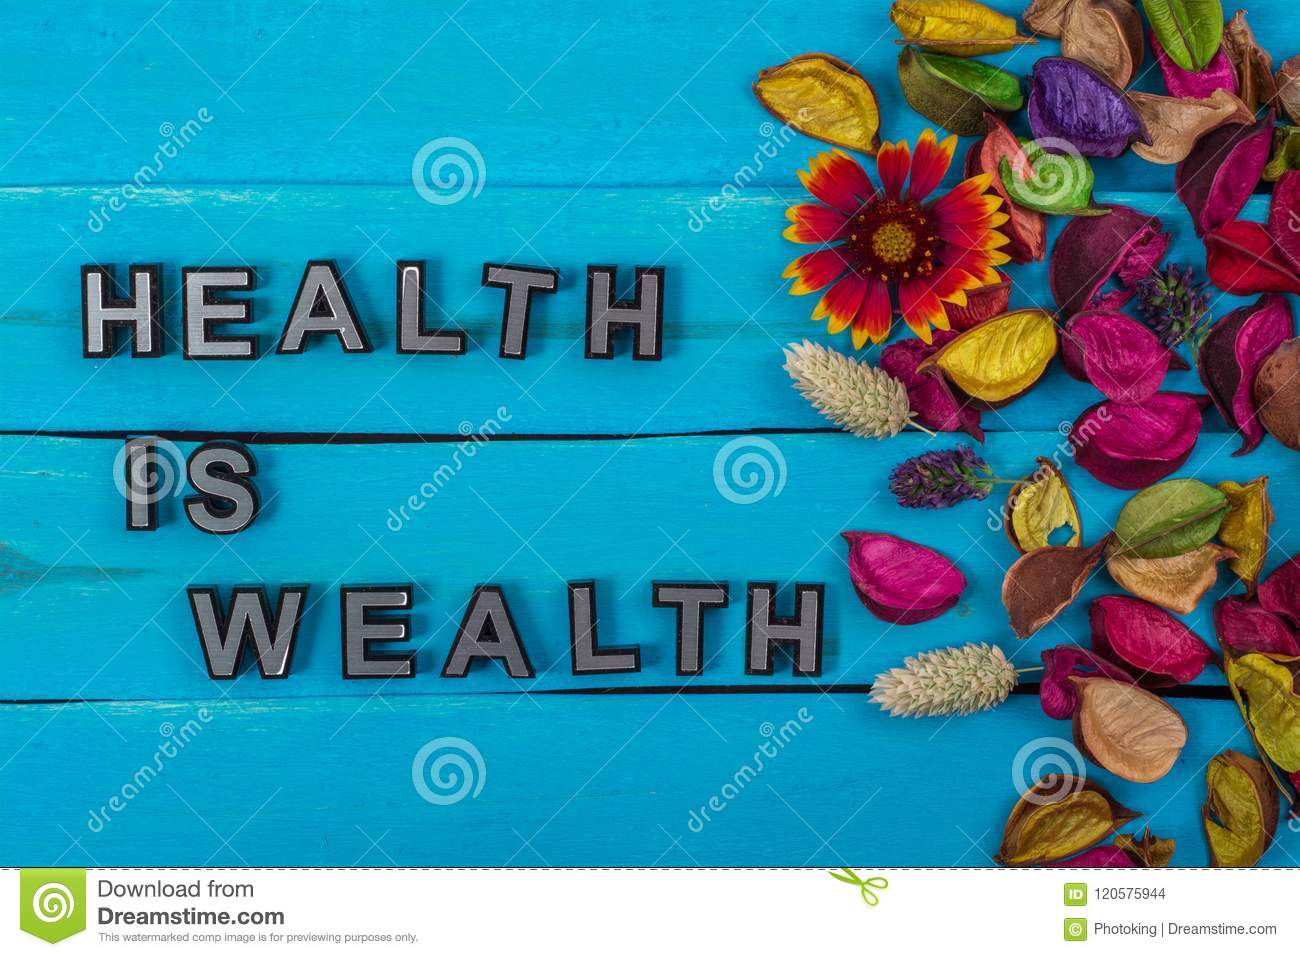 Health is wealth text on blue wood with flower